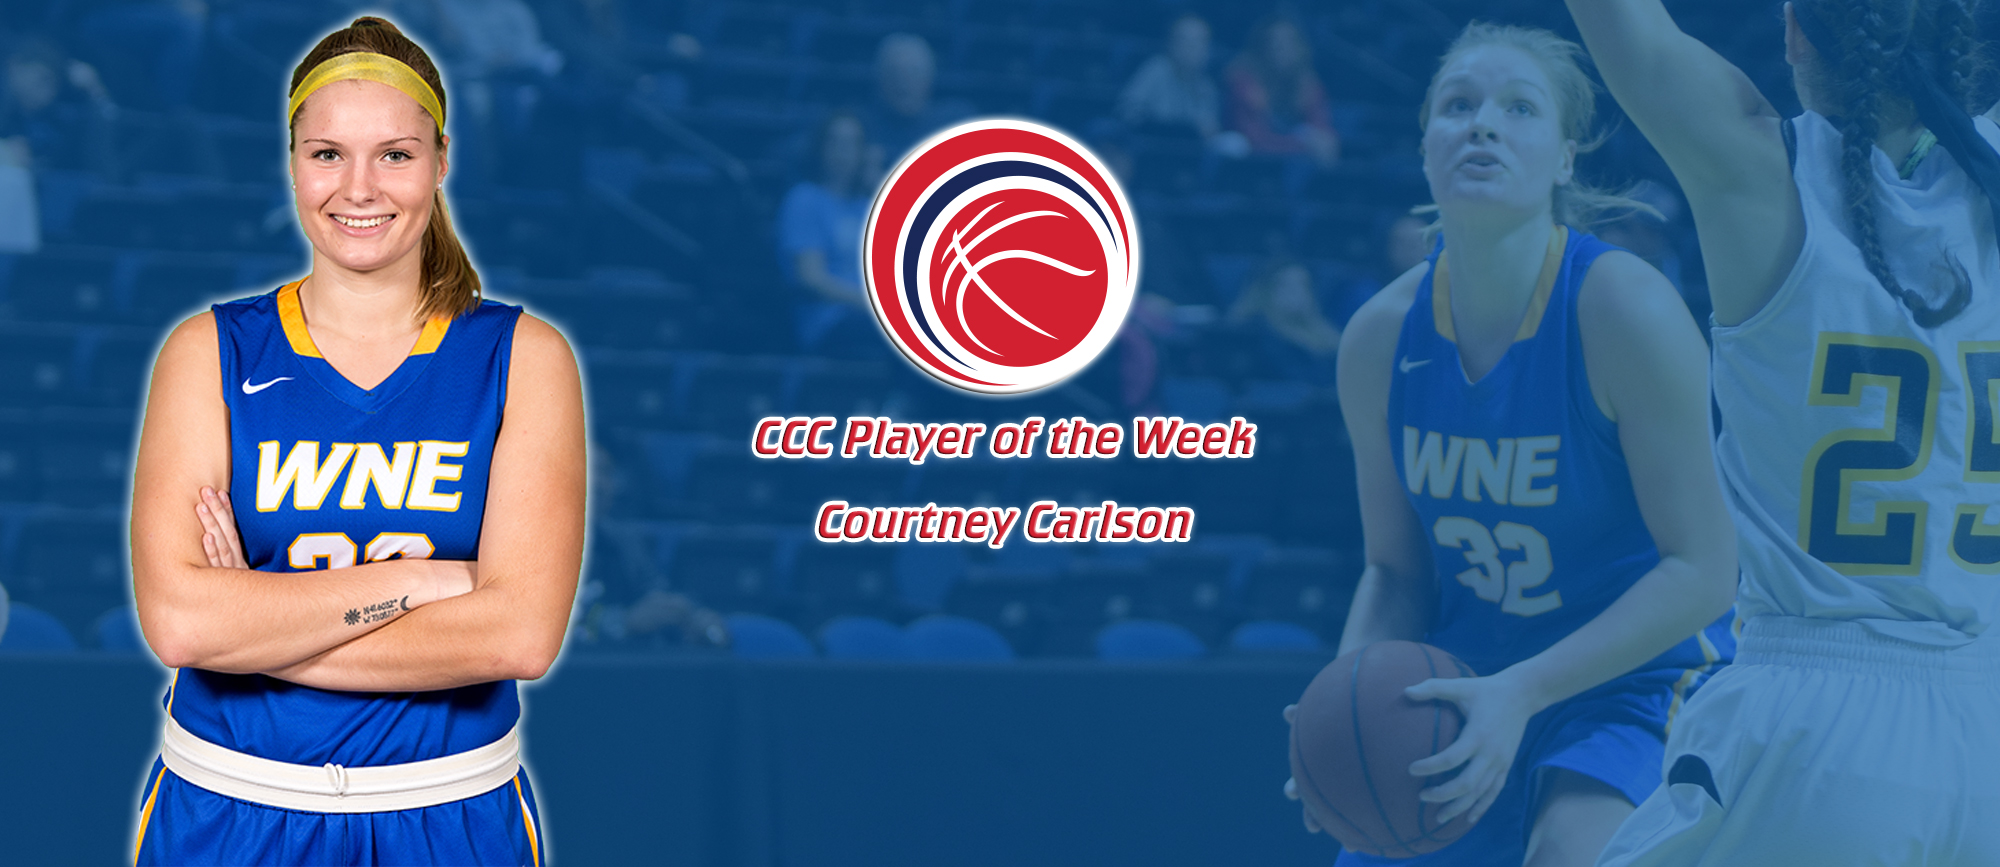 Courtney Carlson Earns First Career CCC Player of the Week Award